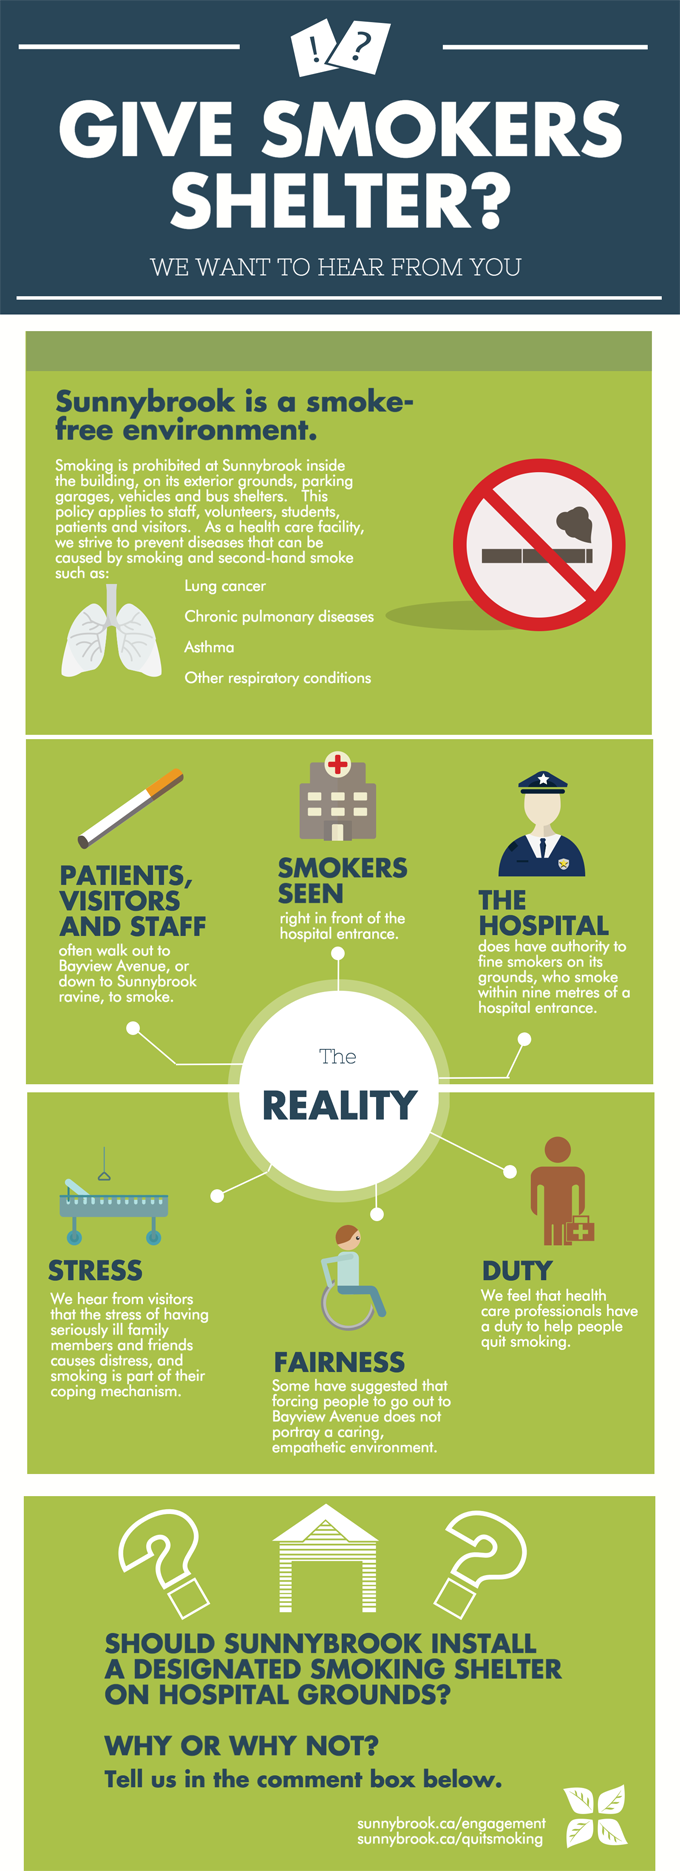 Give Smokers Shelter infographic. Accessible text follows